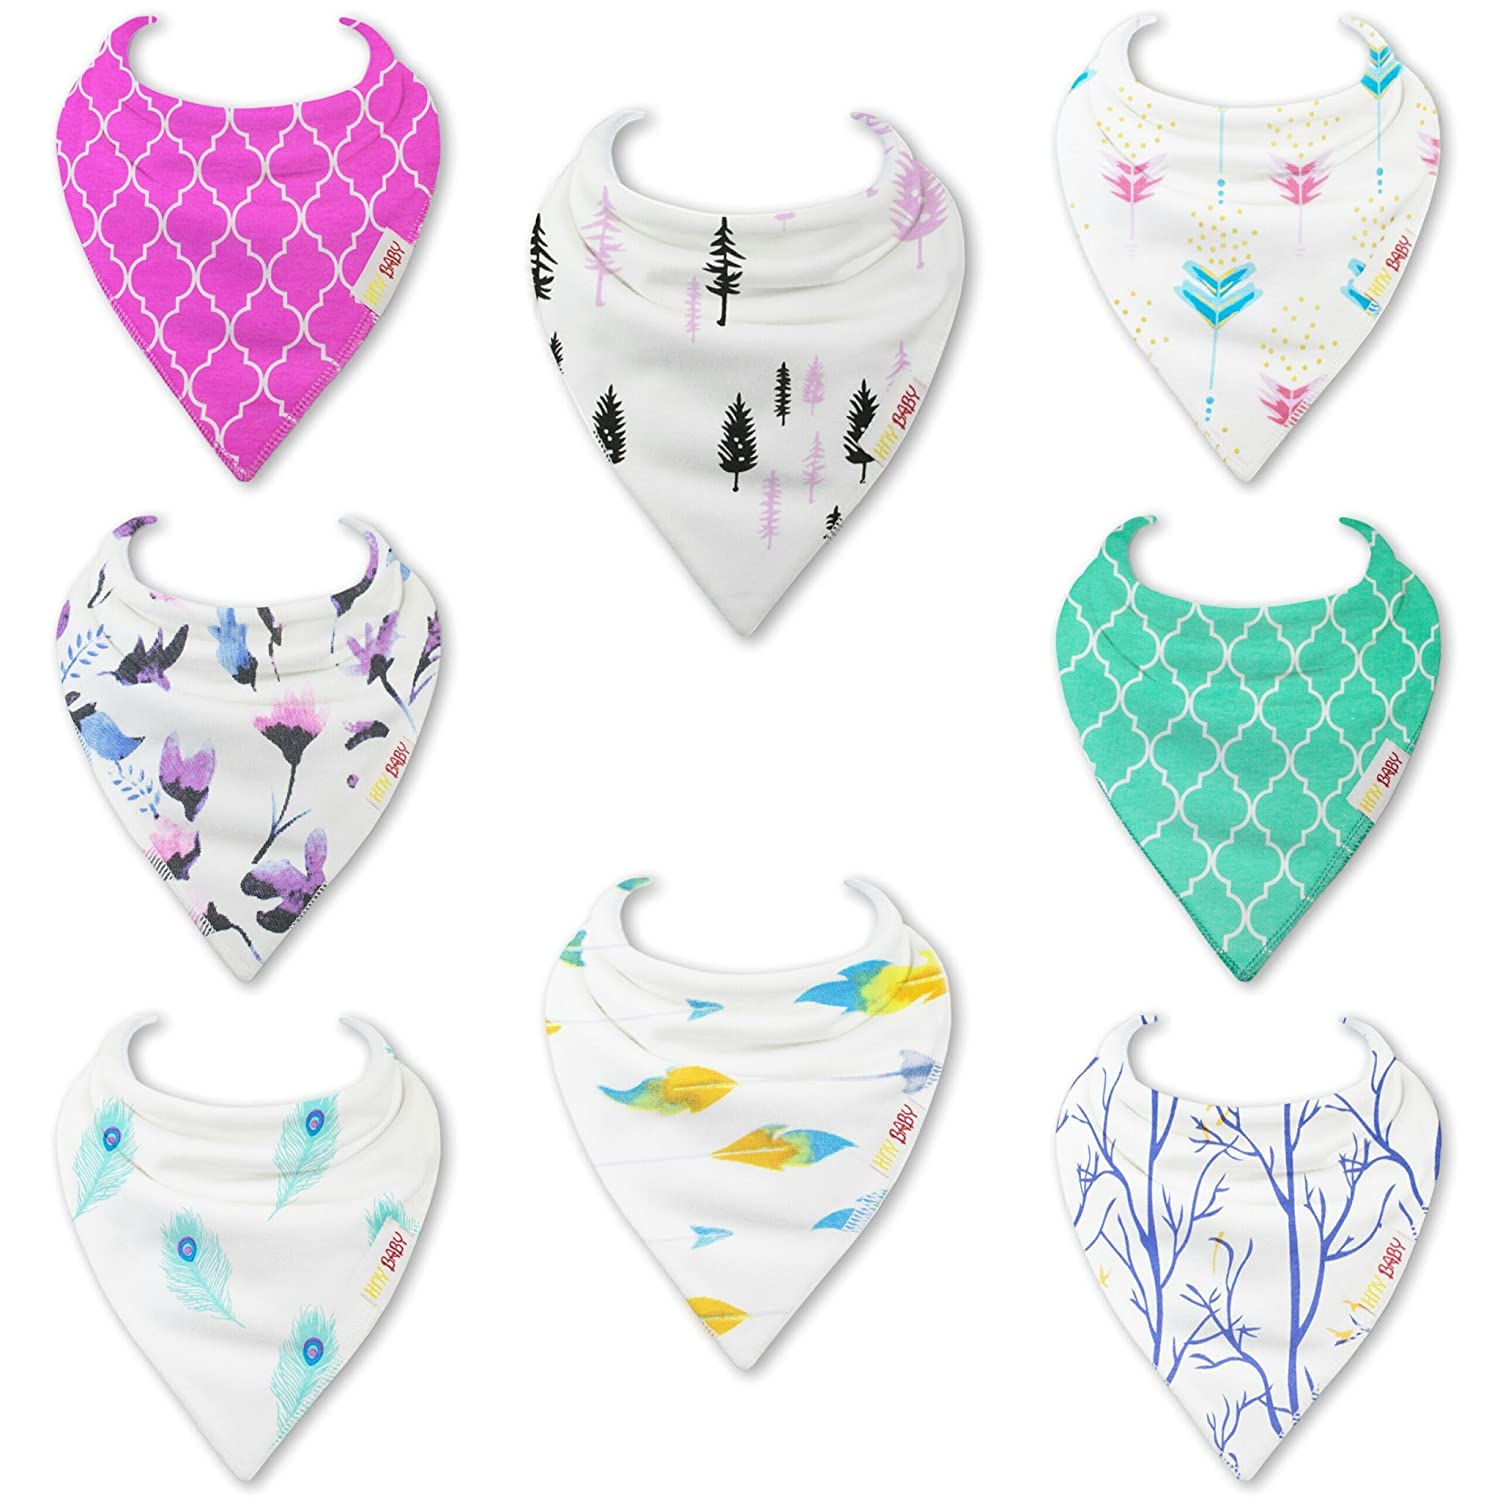 HnyBaby Baby Bandana Drool Bibs for Boys and Girls 8 PackBlossom and Boho Organic Cotton with Adjustable Snaps, Drooling and Teething Bib Unisex Gift Set